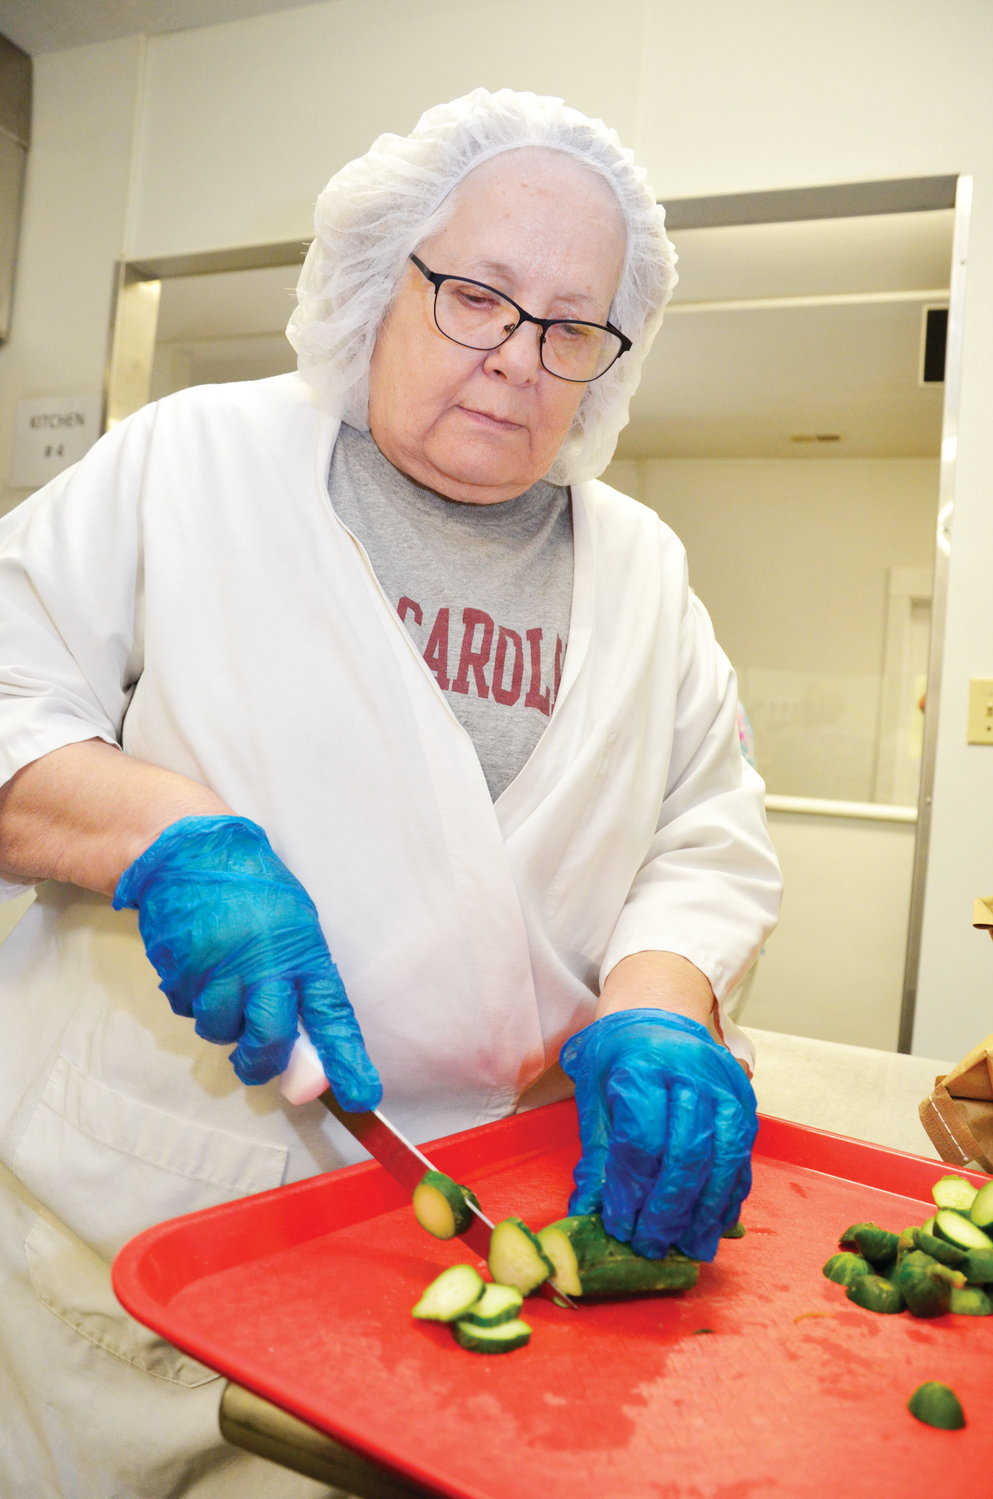 Sandy Brown, co-owner of Sandy & Co., slices pickles for the many varieties offered by her company in the showroom. Southern Supreme sells pickles, jellies, chocolates and other products when fruitcakes are not in demand.